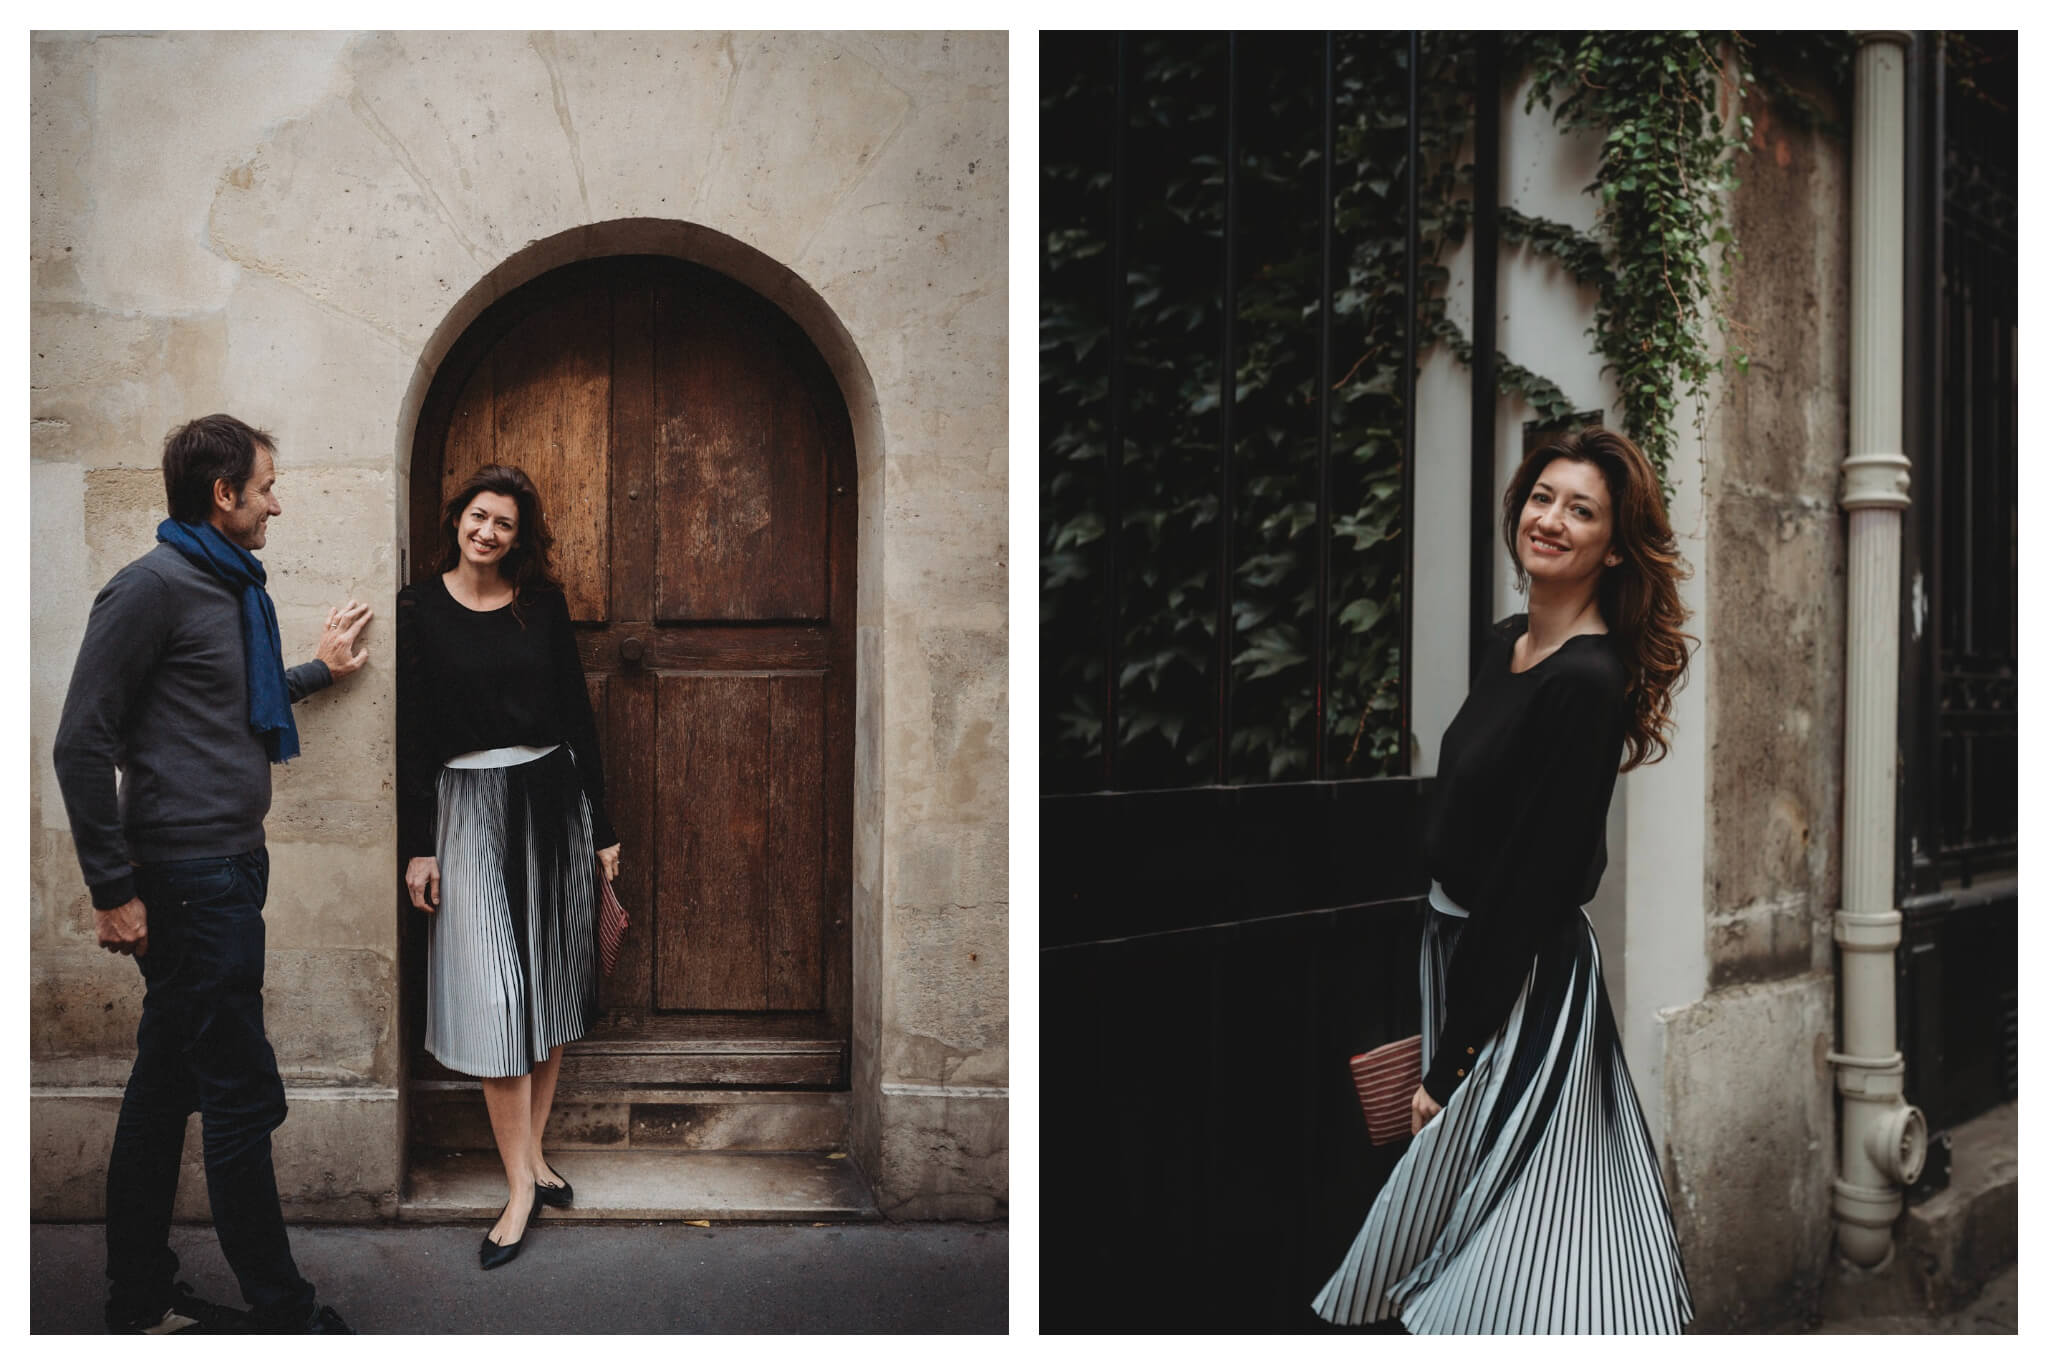 Left: A woman is standing in a small archway, looking directly at the camera and smiling. A man stands closely next to her, smiling at her instead of the camera. Right: A woman stands angled towards the camera, smiling. Her skirt flows as if she has just turned around to face the camera.